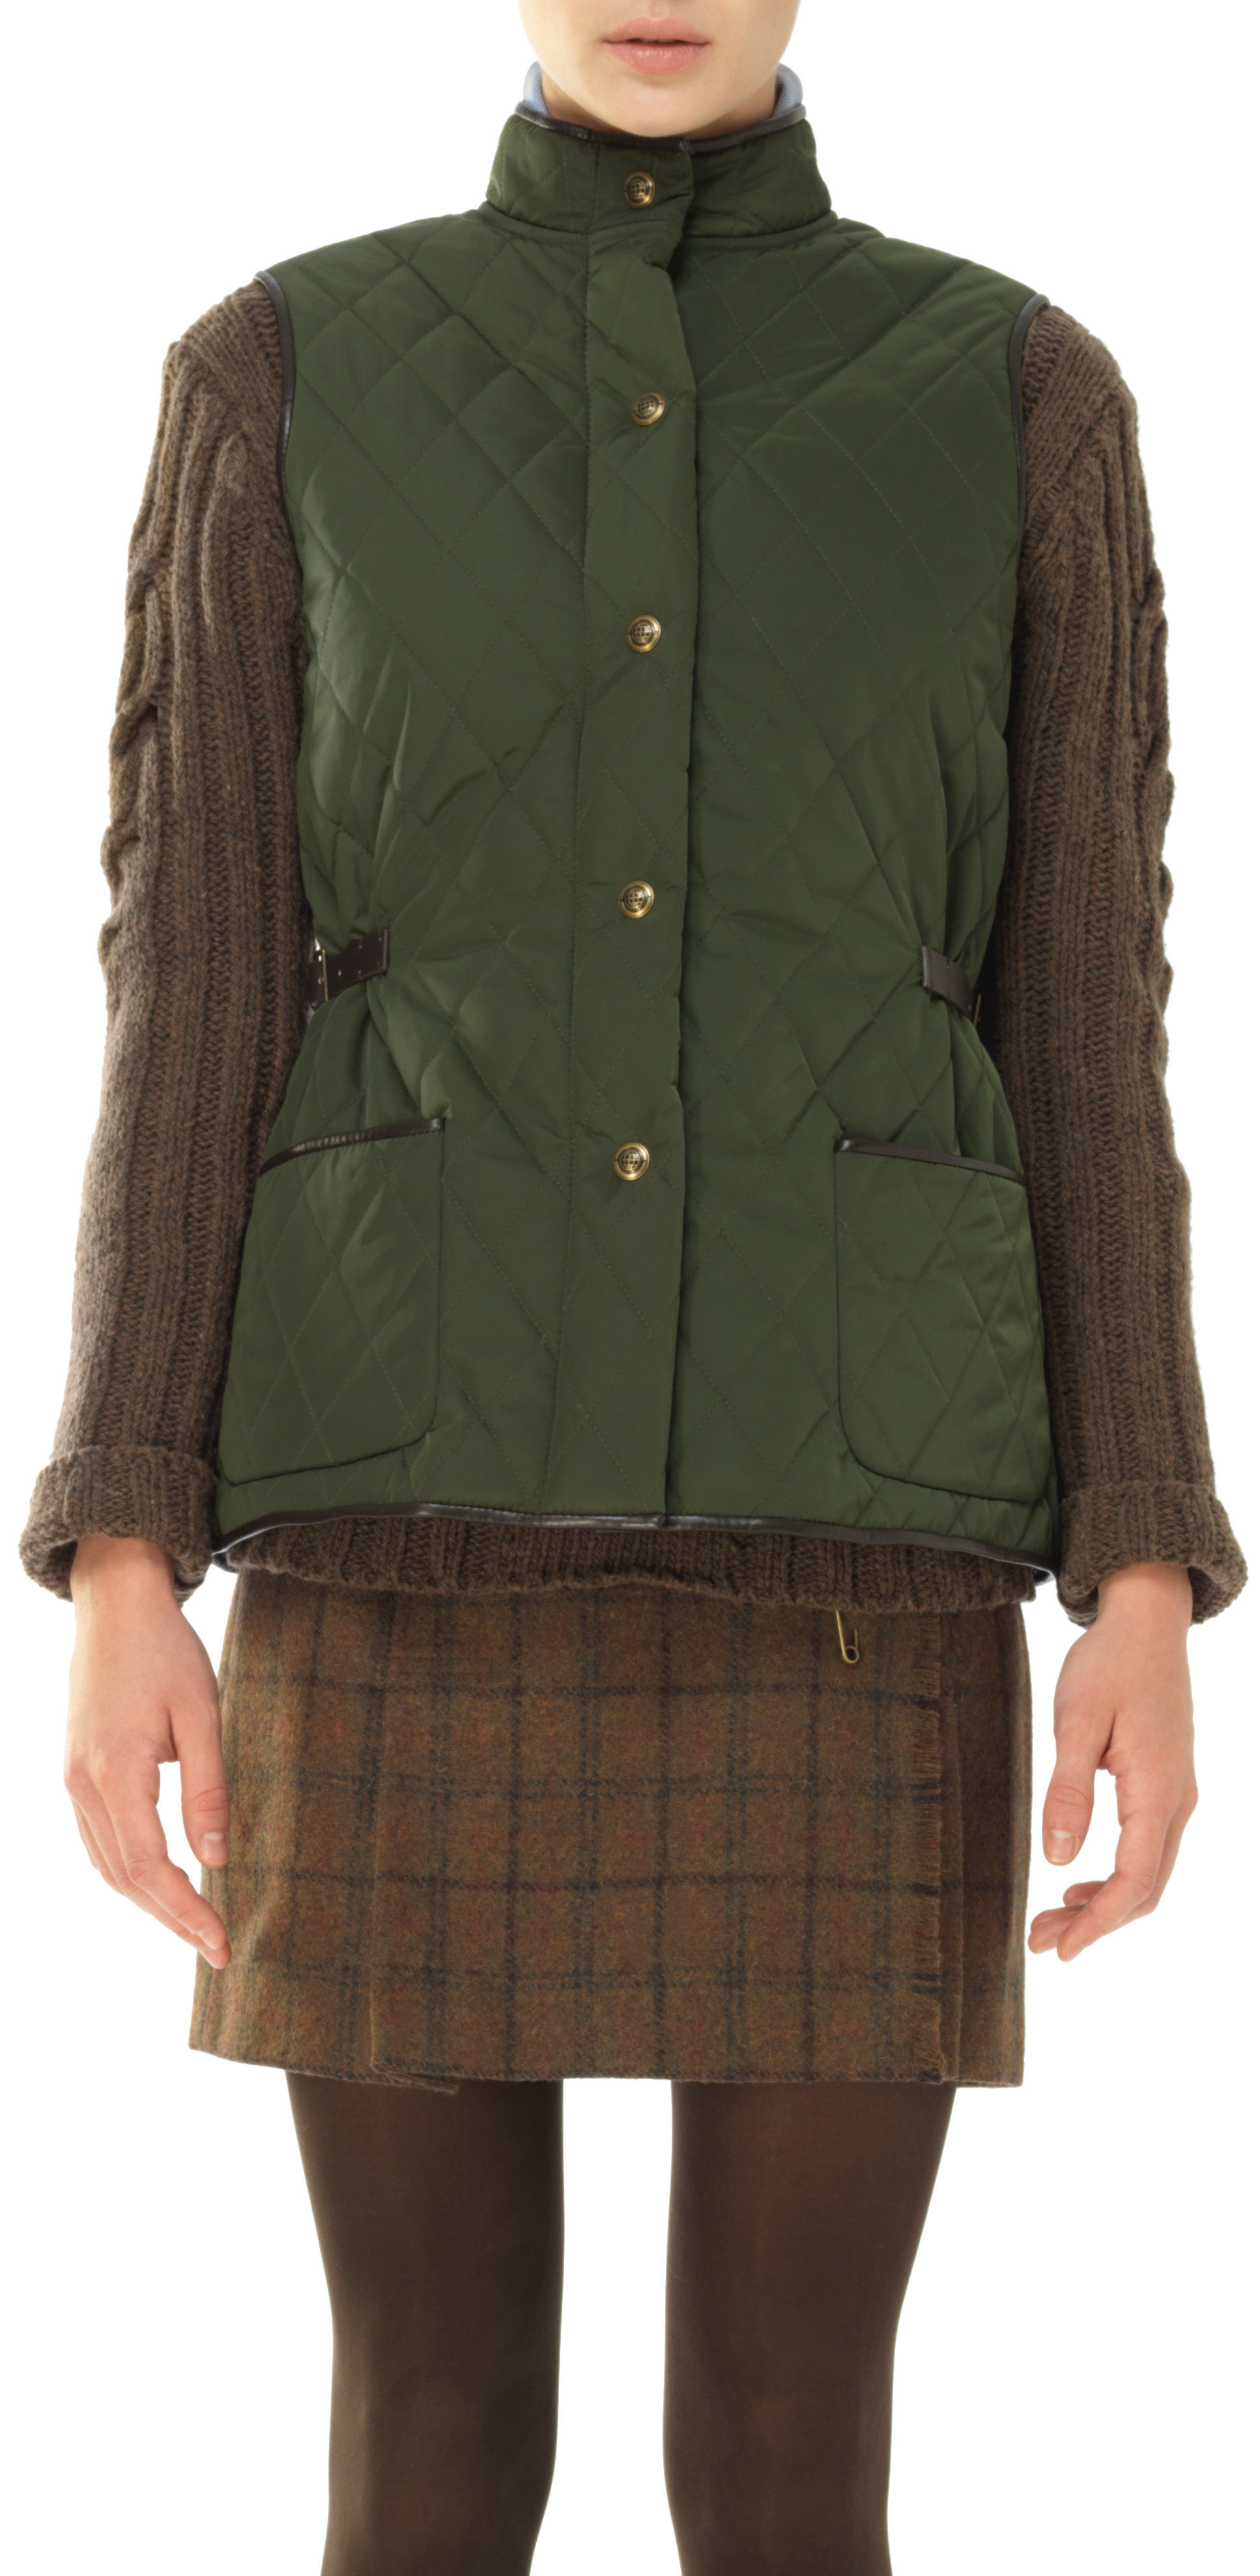 Free shipping and returns on Women's Green Vests at dolcehouse.ml